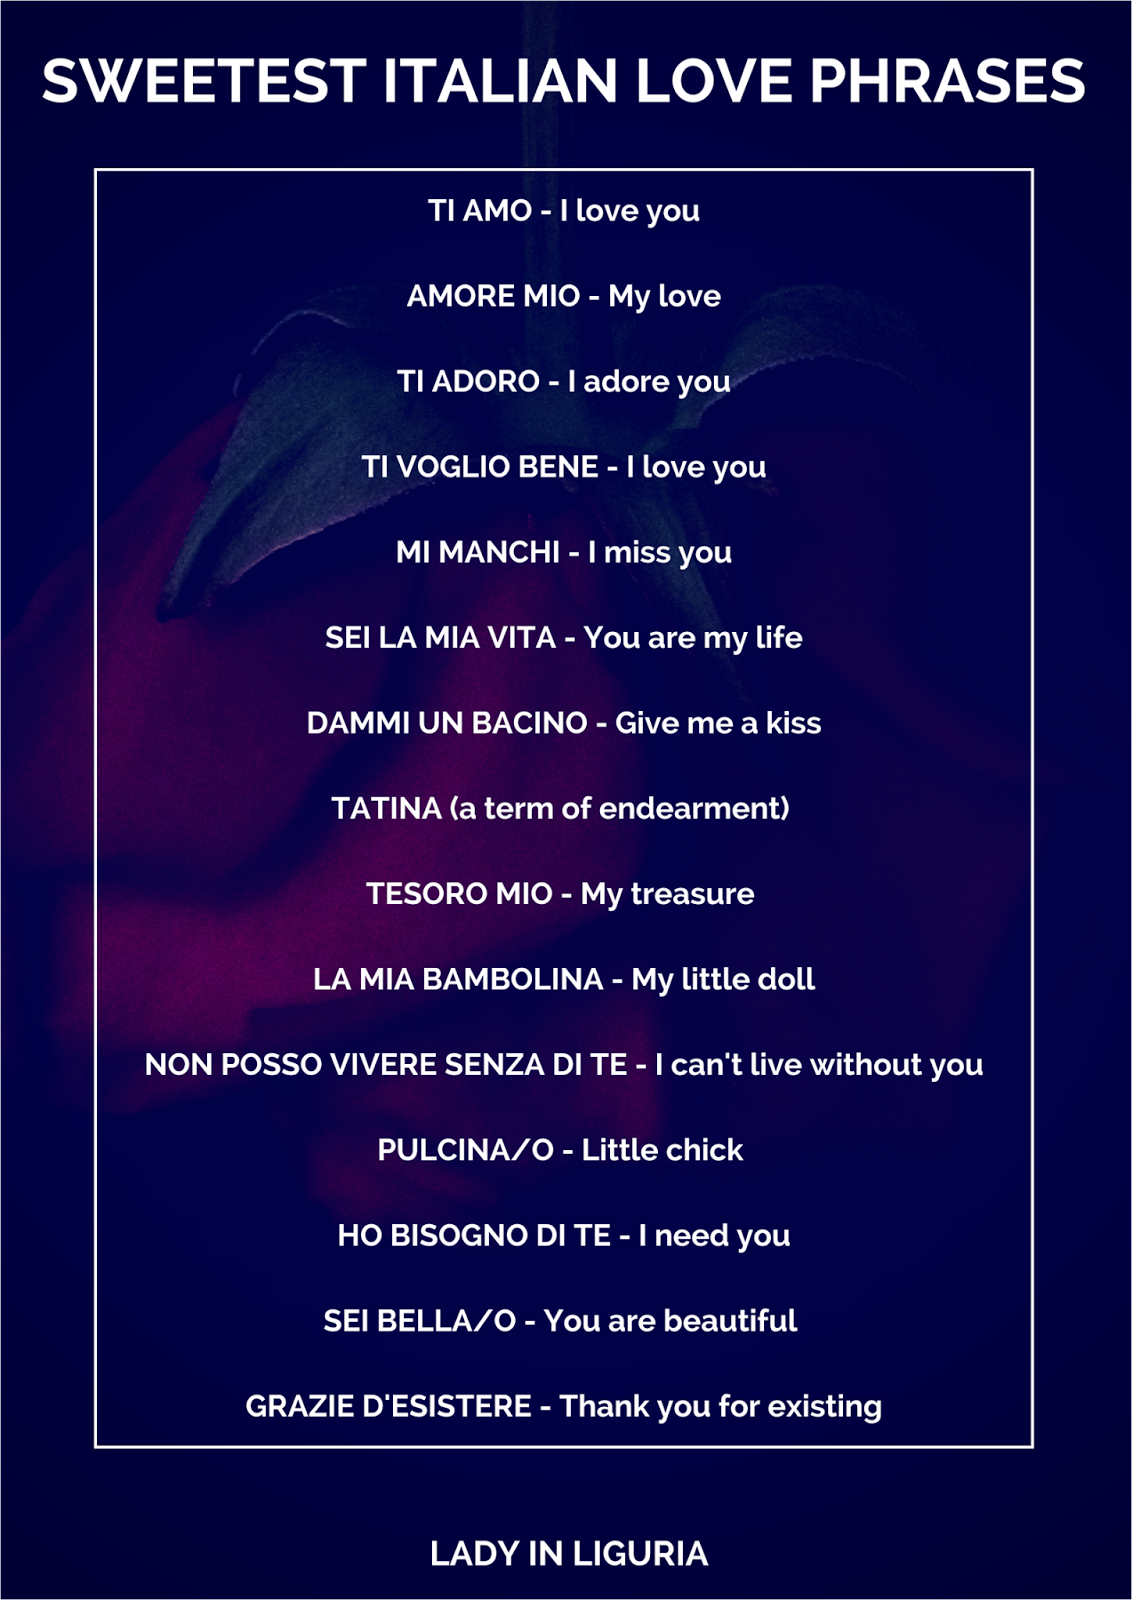 Beautiful Italian Quotes: 1000+ Images About Italian Love Phrases On Pinterest